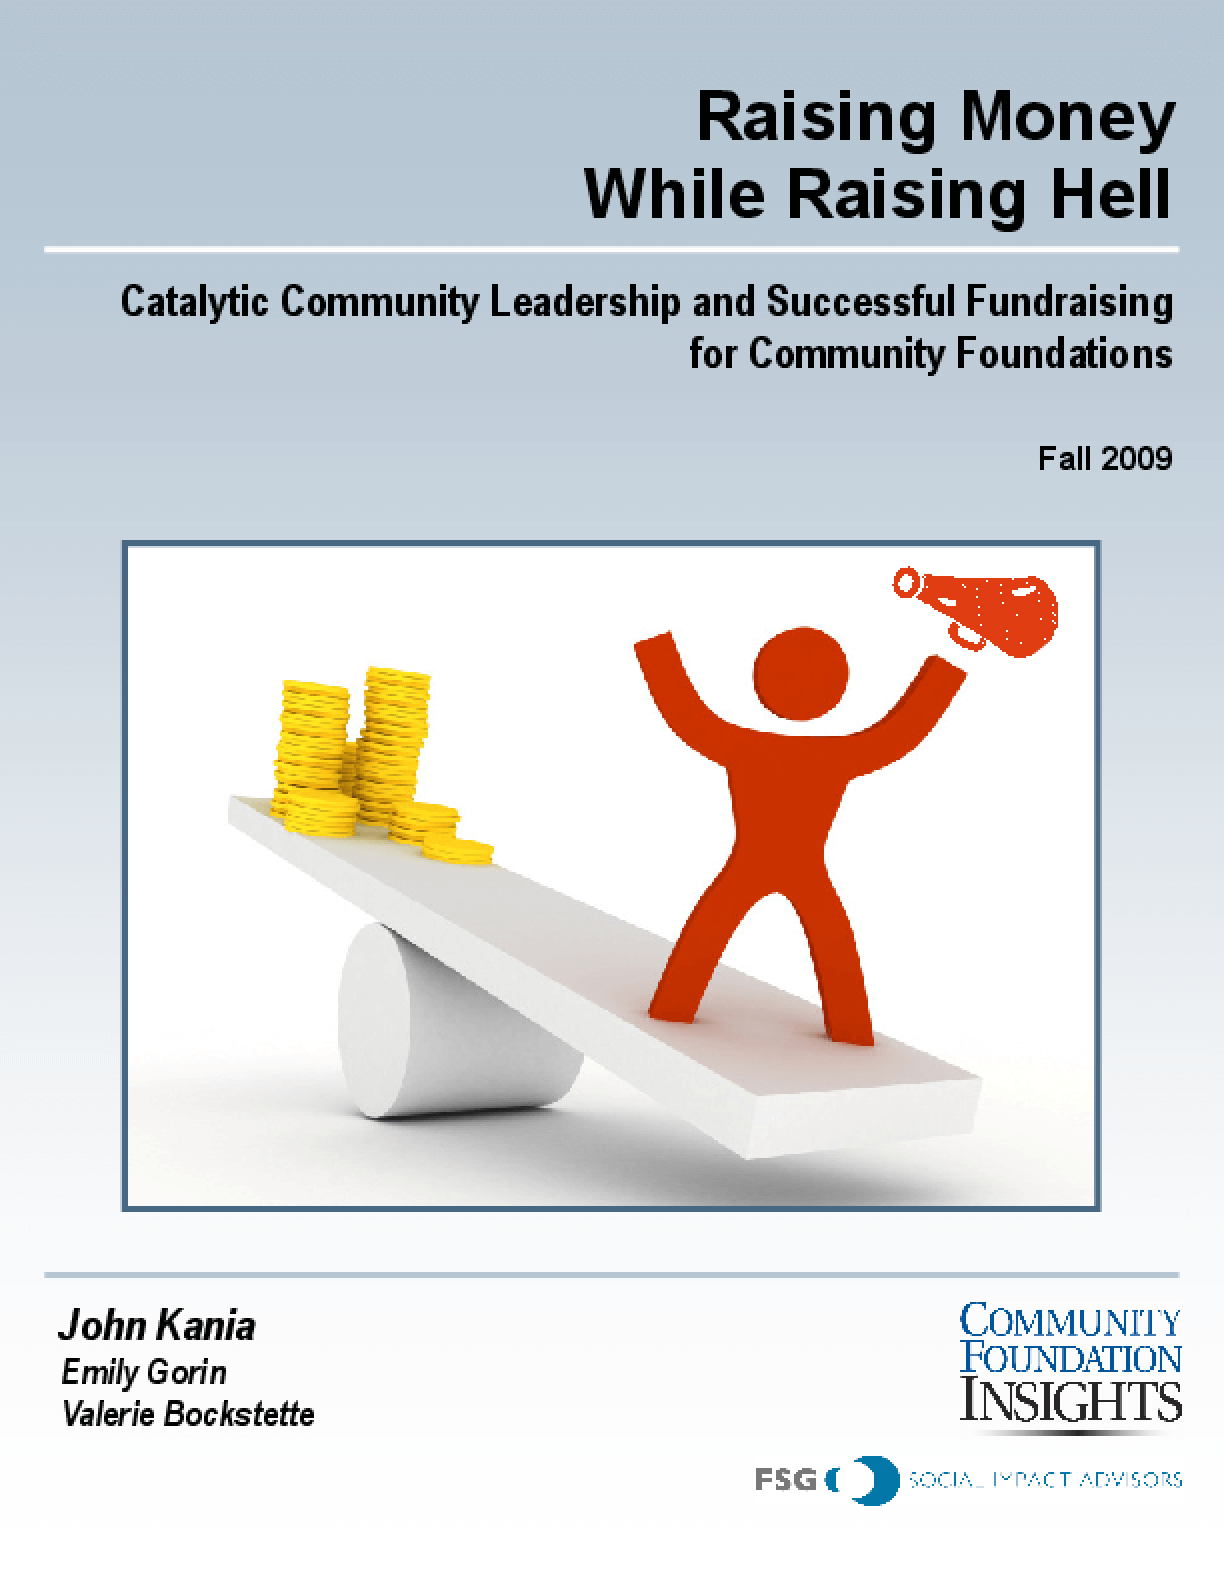 Raising Money While Raising Hell: Catalytic Community Leadership and Successful Fundraising for Community Foundations